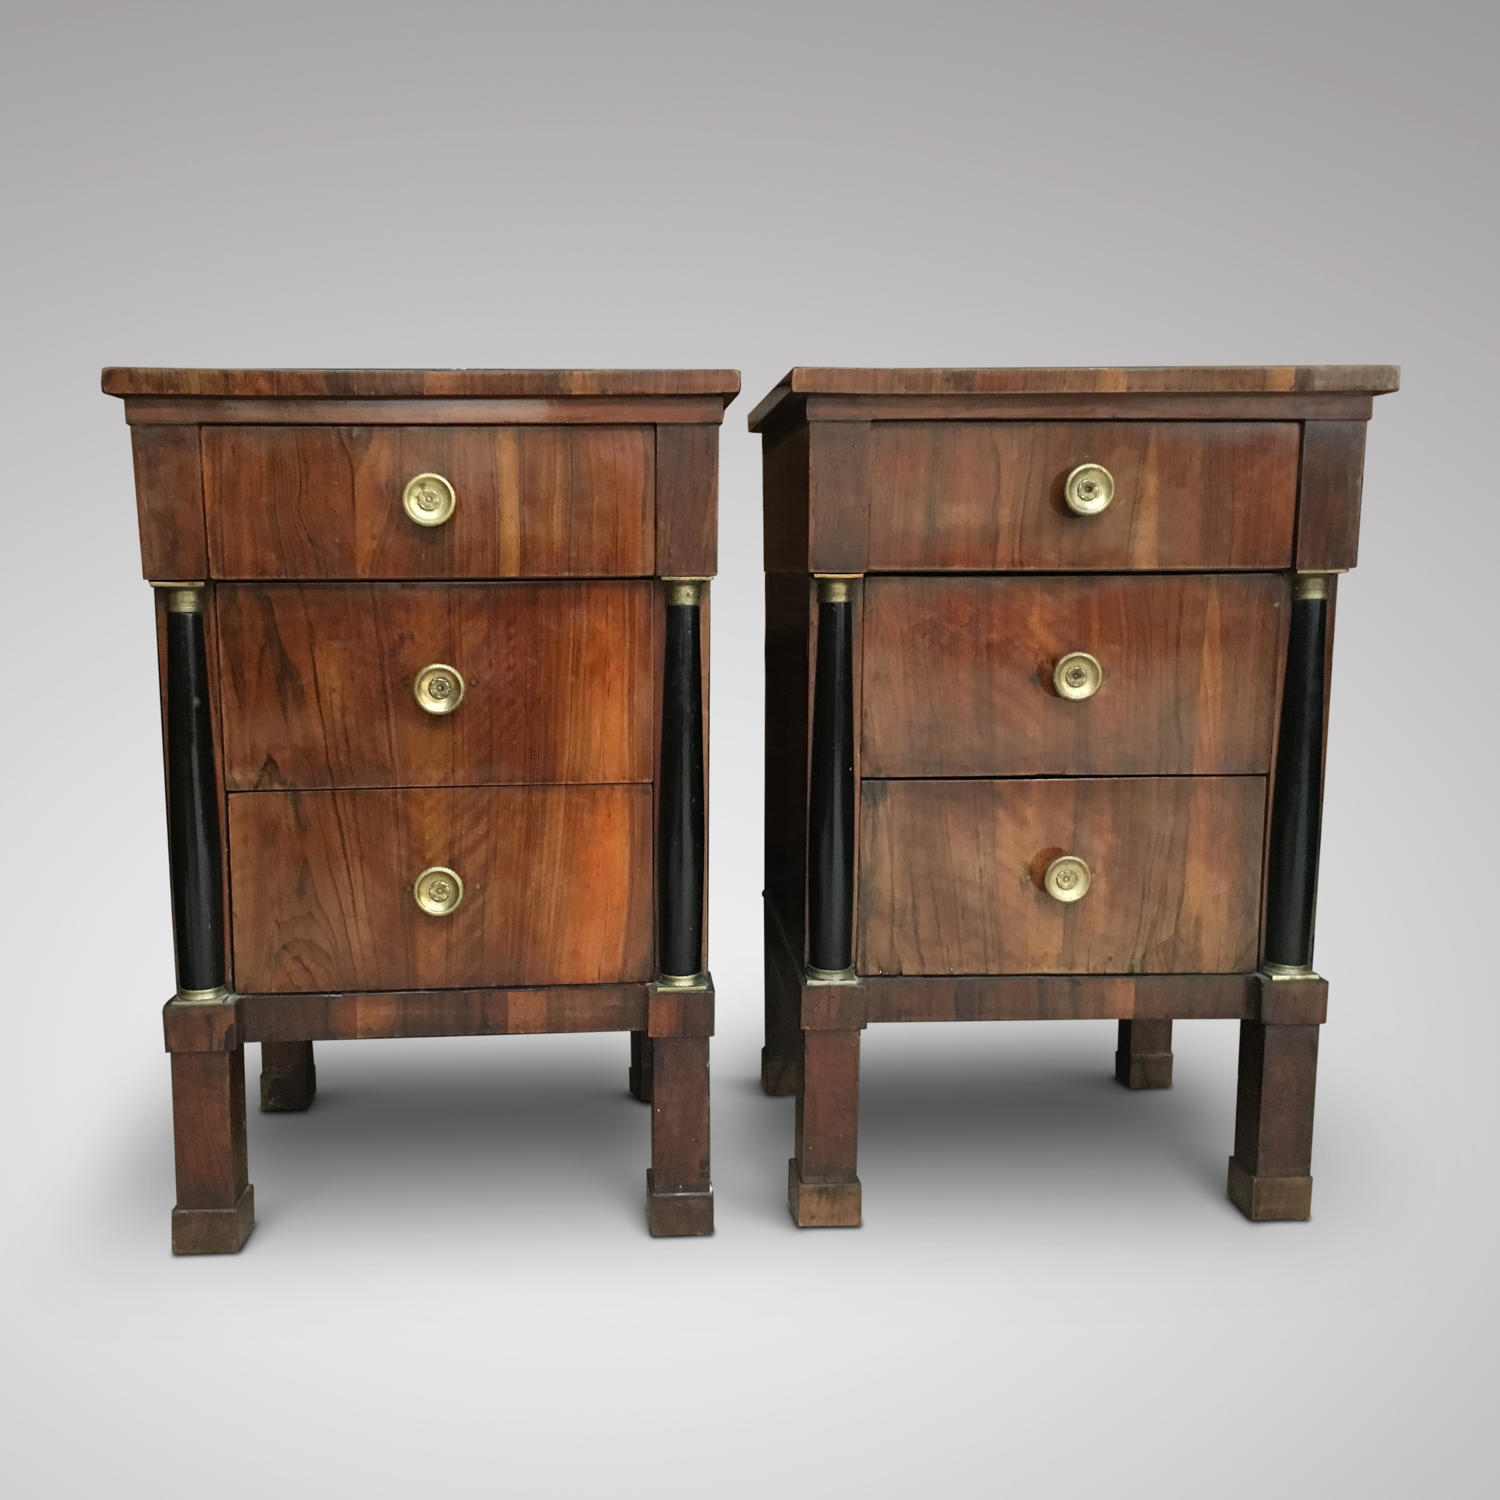 A PAIR OF EARLY 19TH CENTURY WALNUT COMMODINI